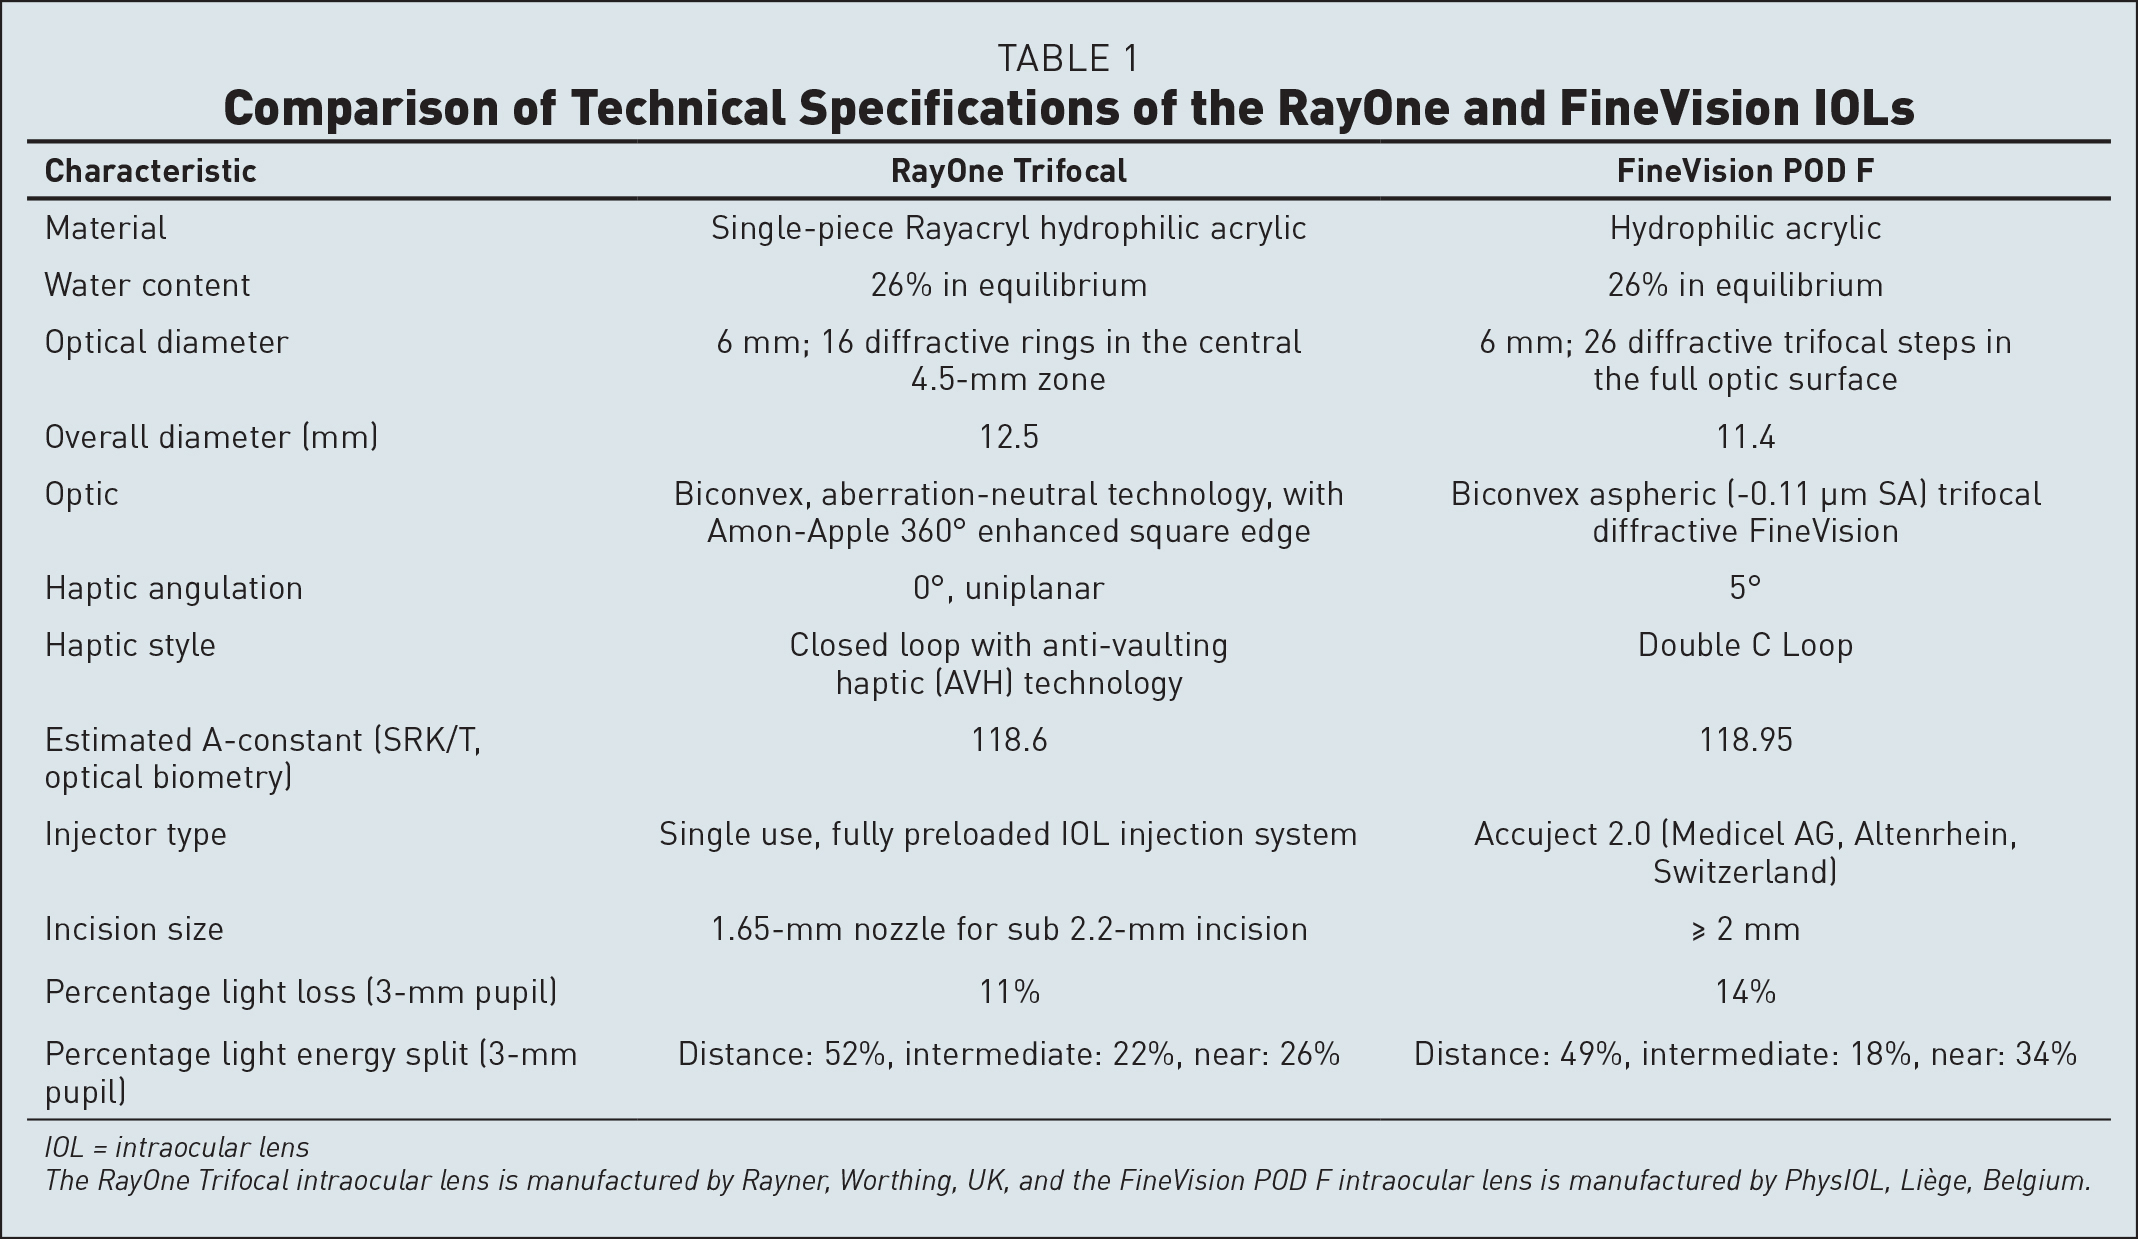 Comparison of Technical Specifications of the RayOne and FineVision IOLs